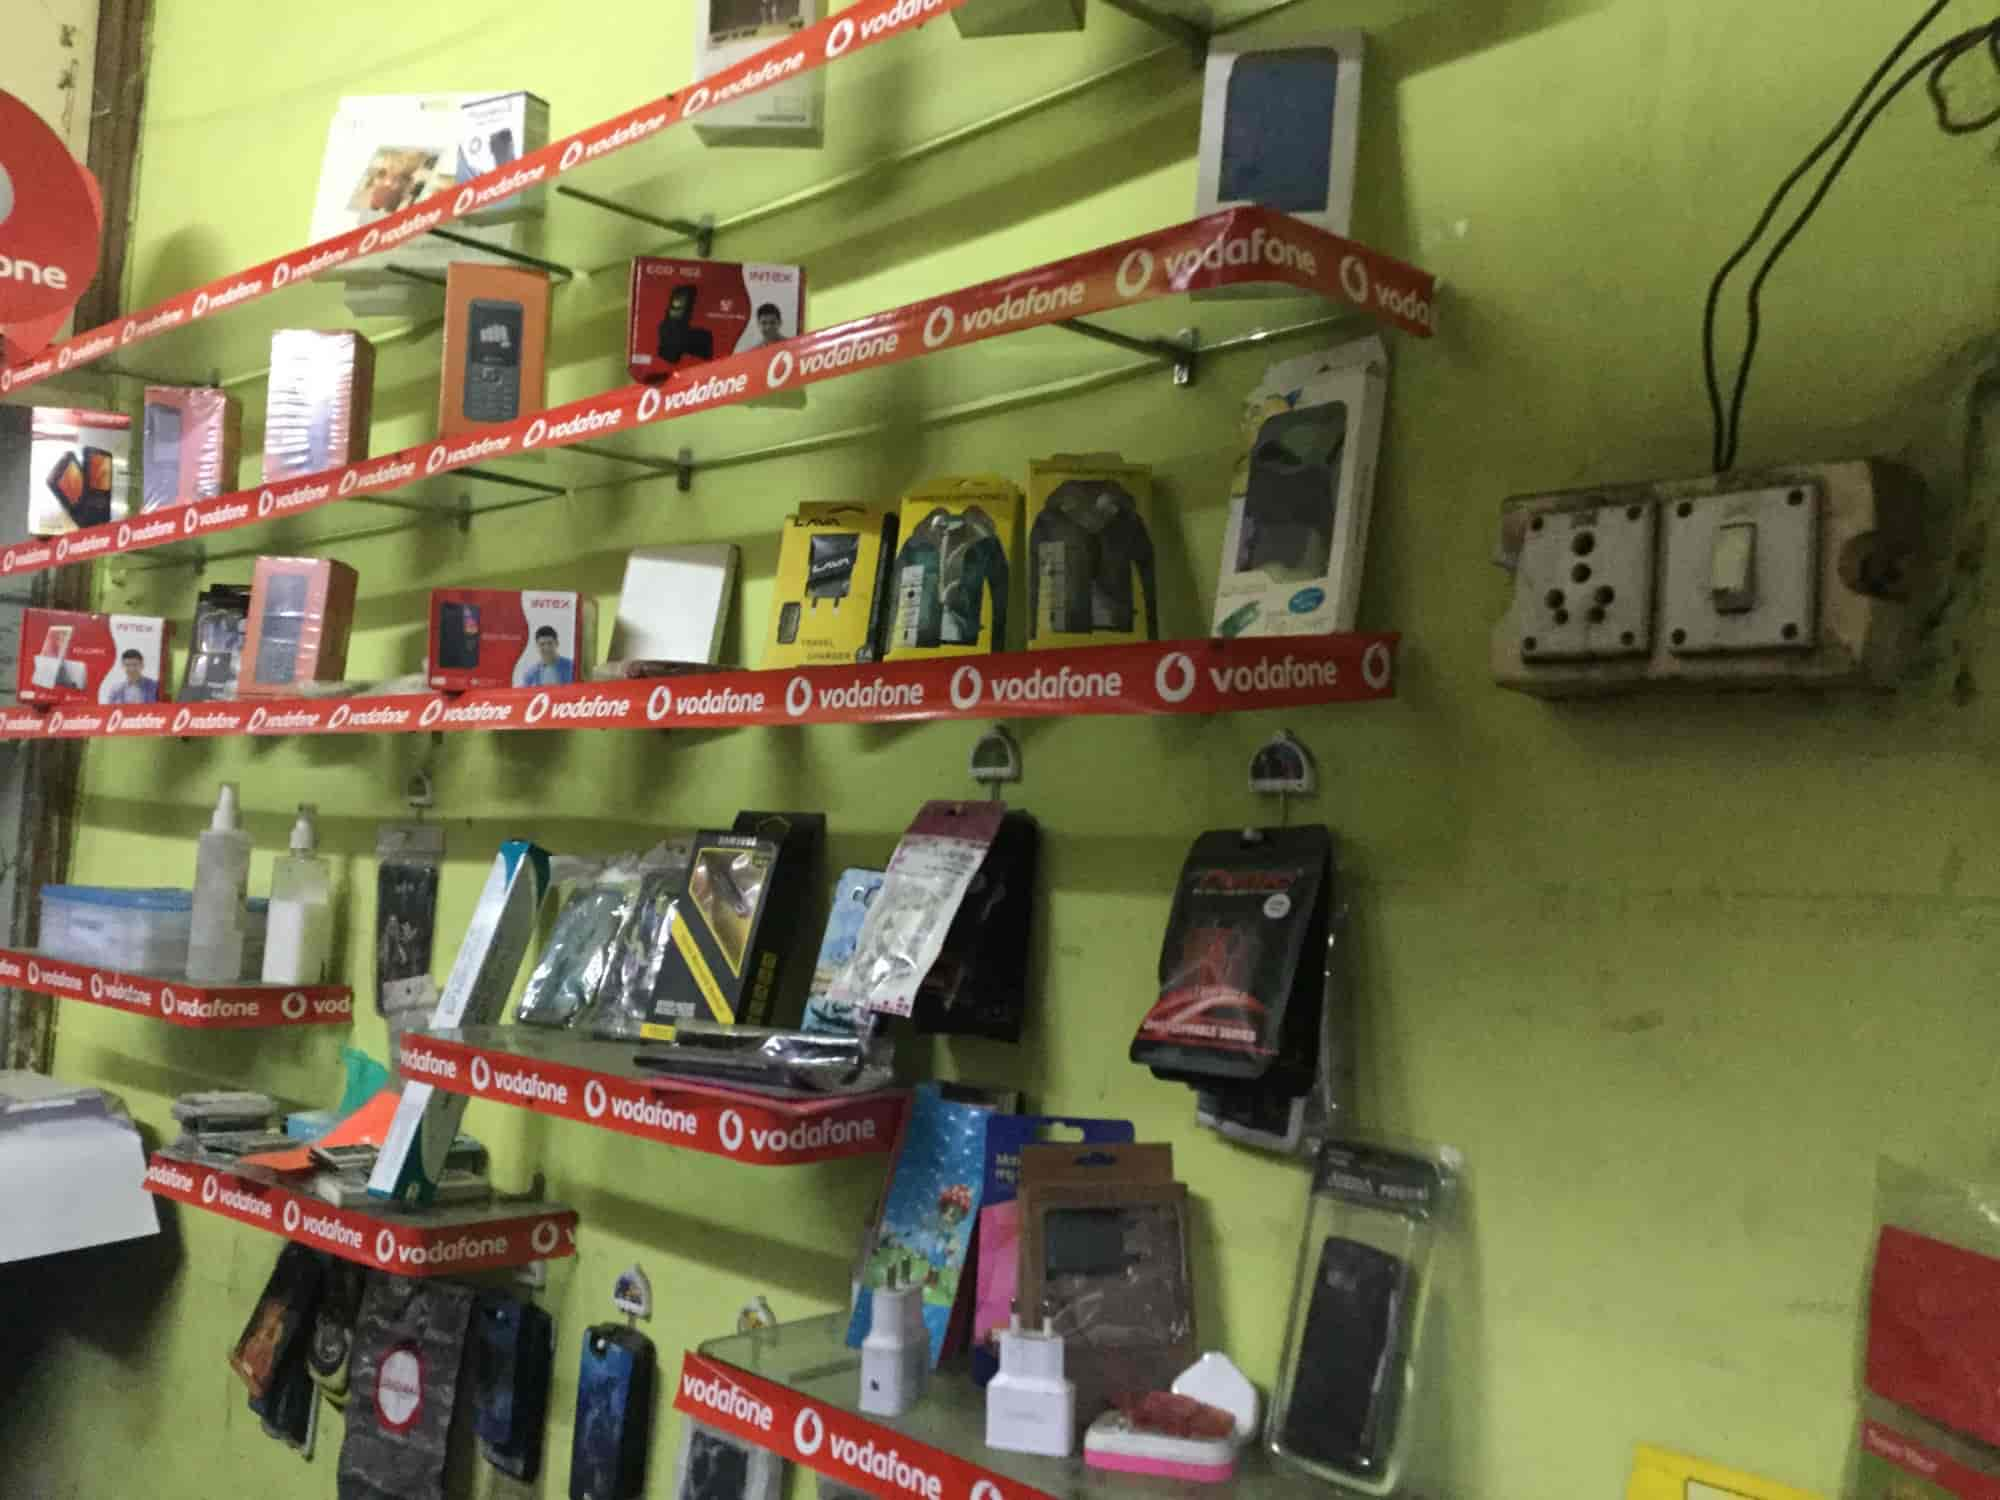 Mr Talk Telecom Photos, Roshanara Road, Gurgaon- Pictures